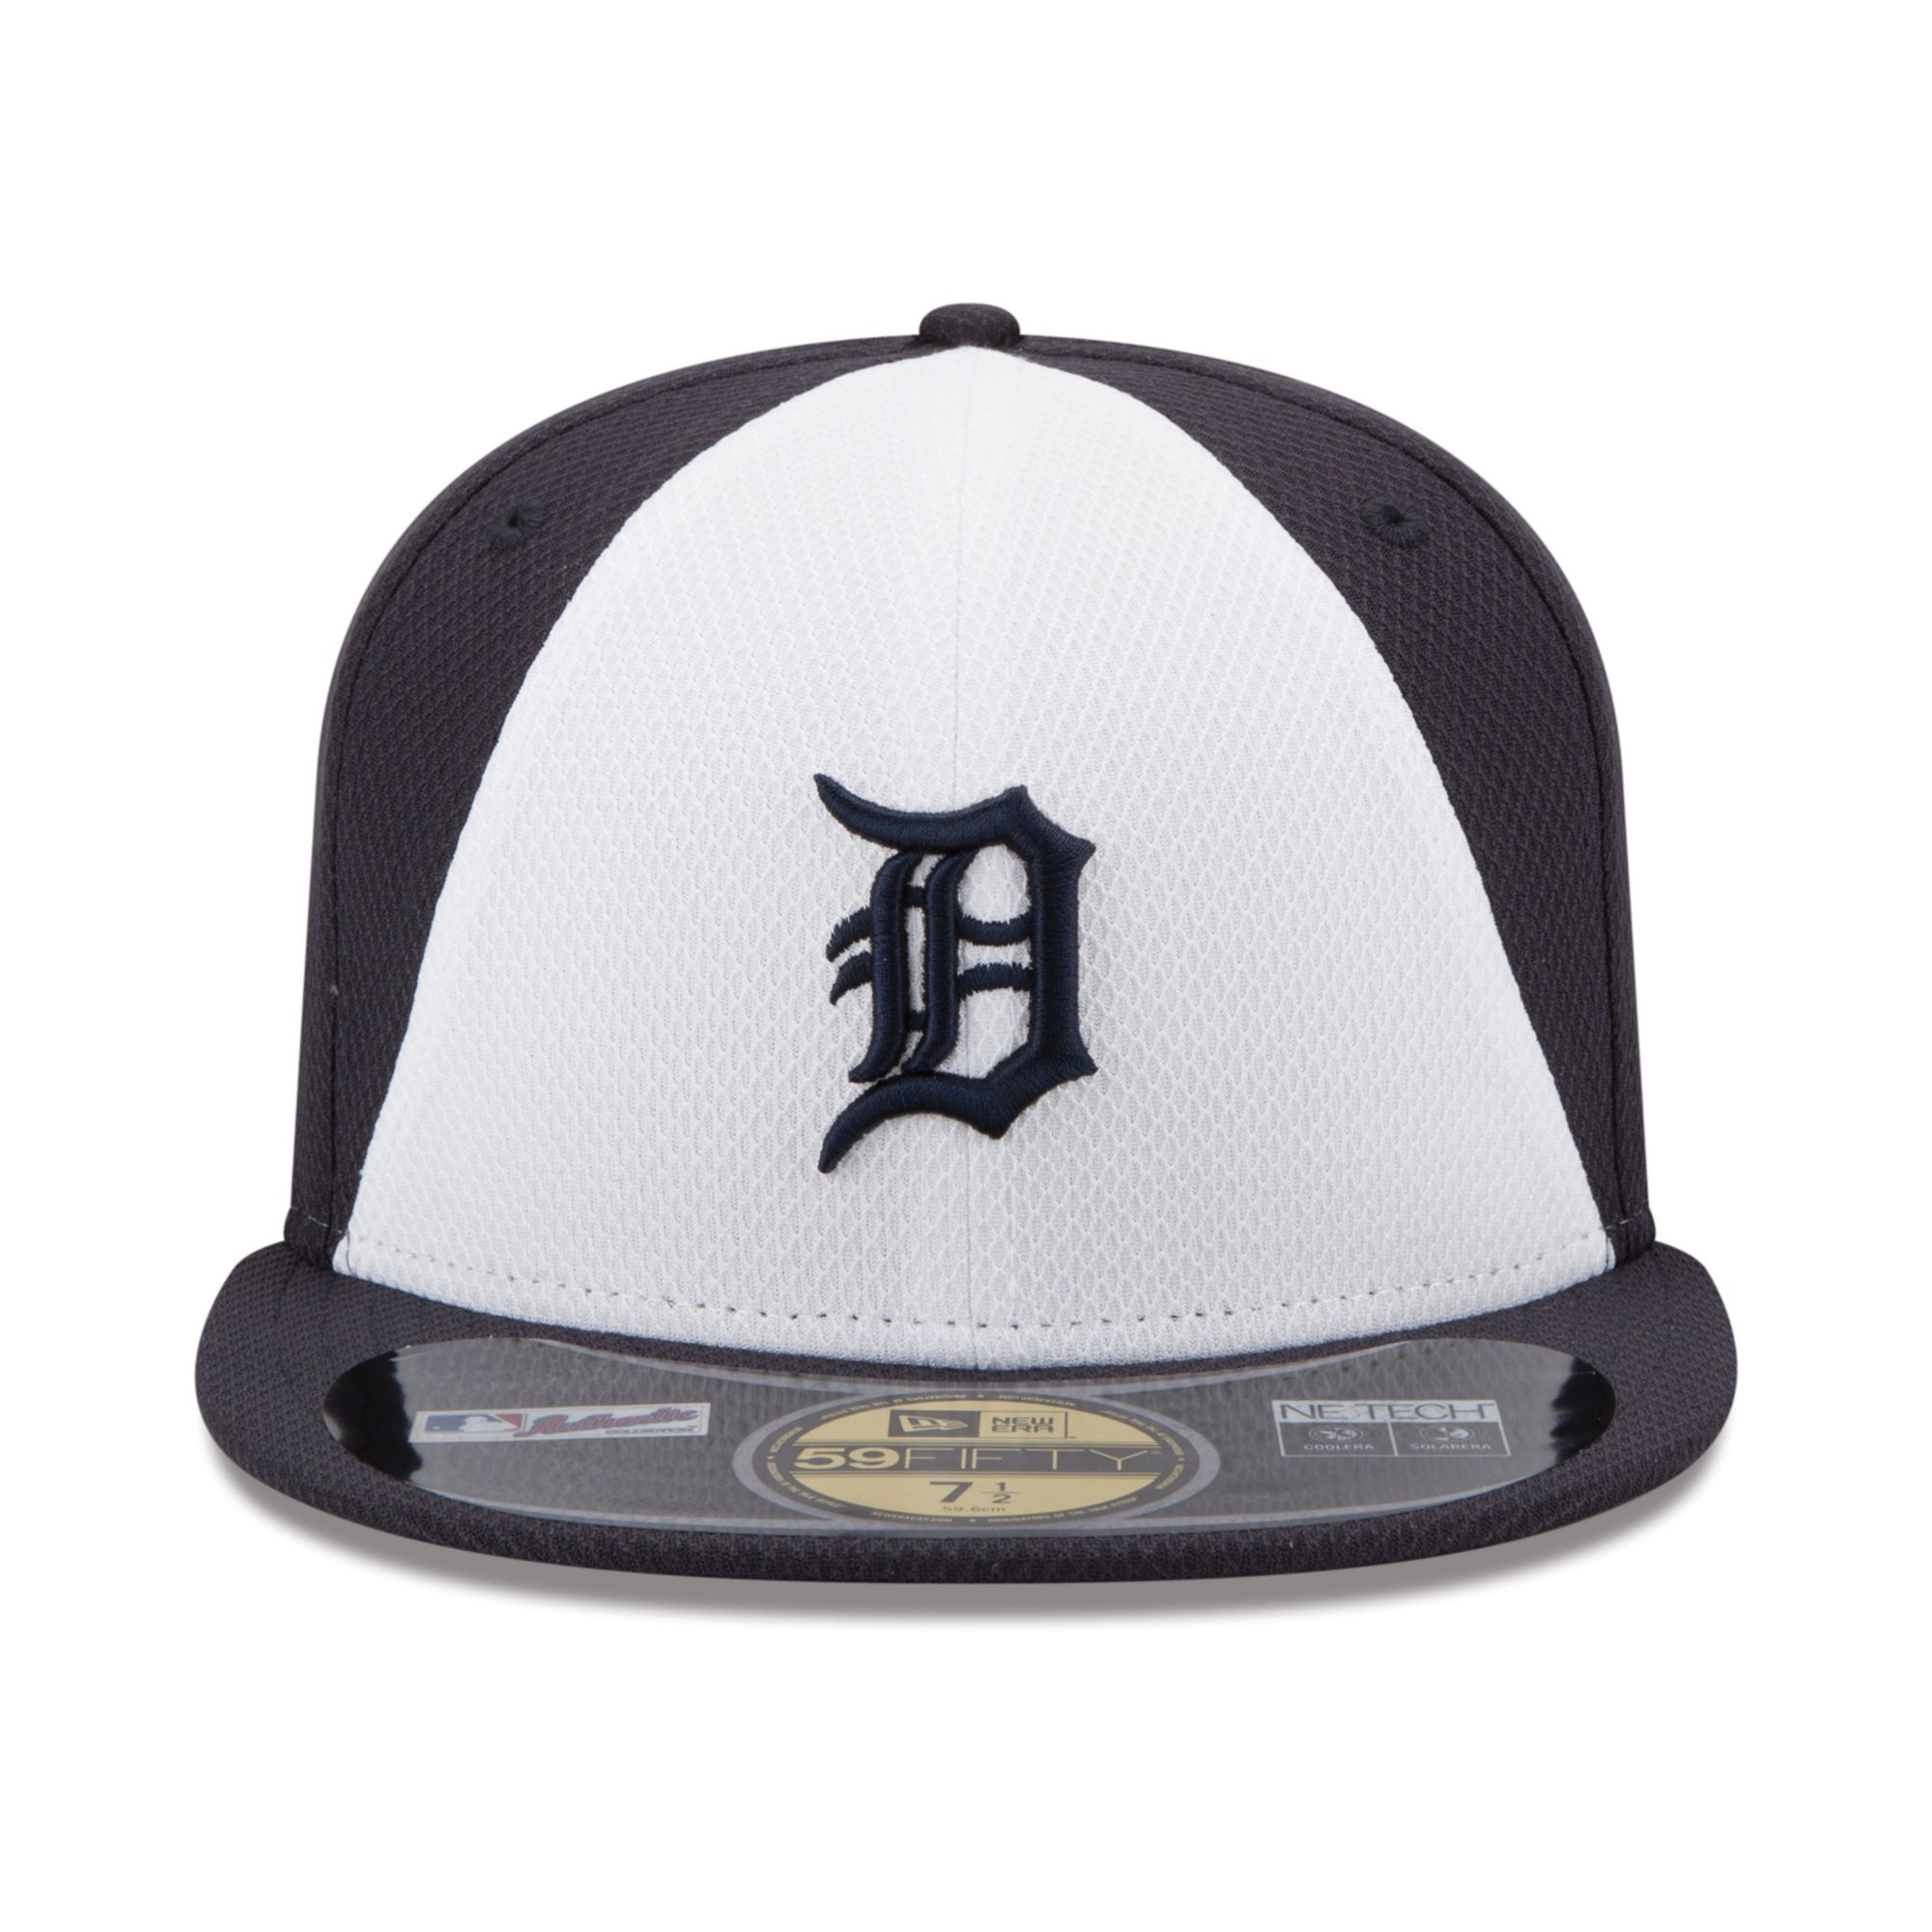 newest 16a33 6840c Lyst - KTZ Detroit Tigers All Star Game Patch 59fifty Cap in White ...